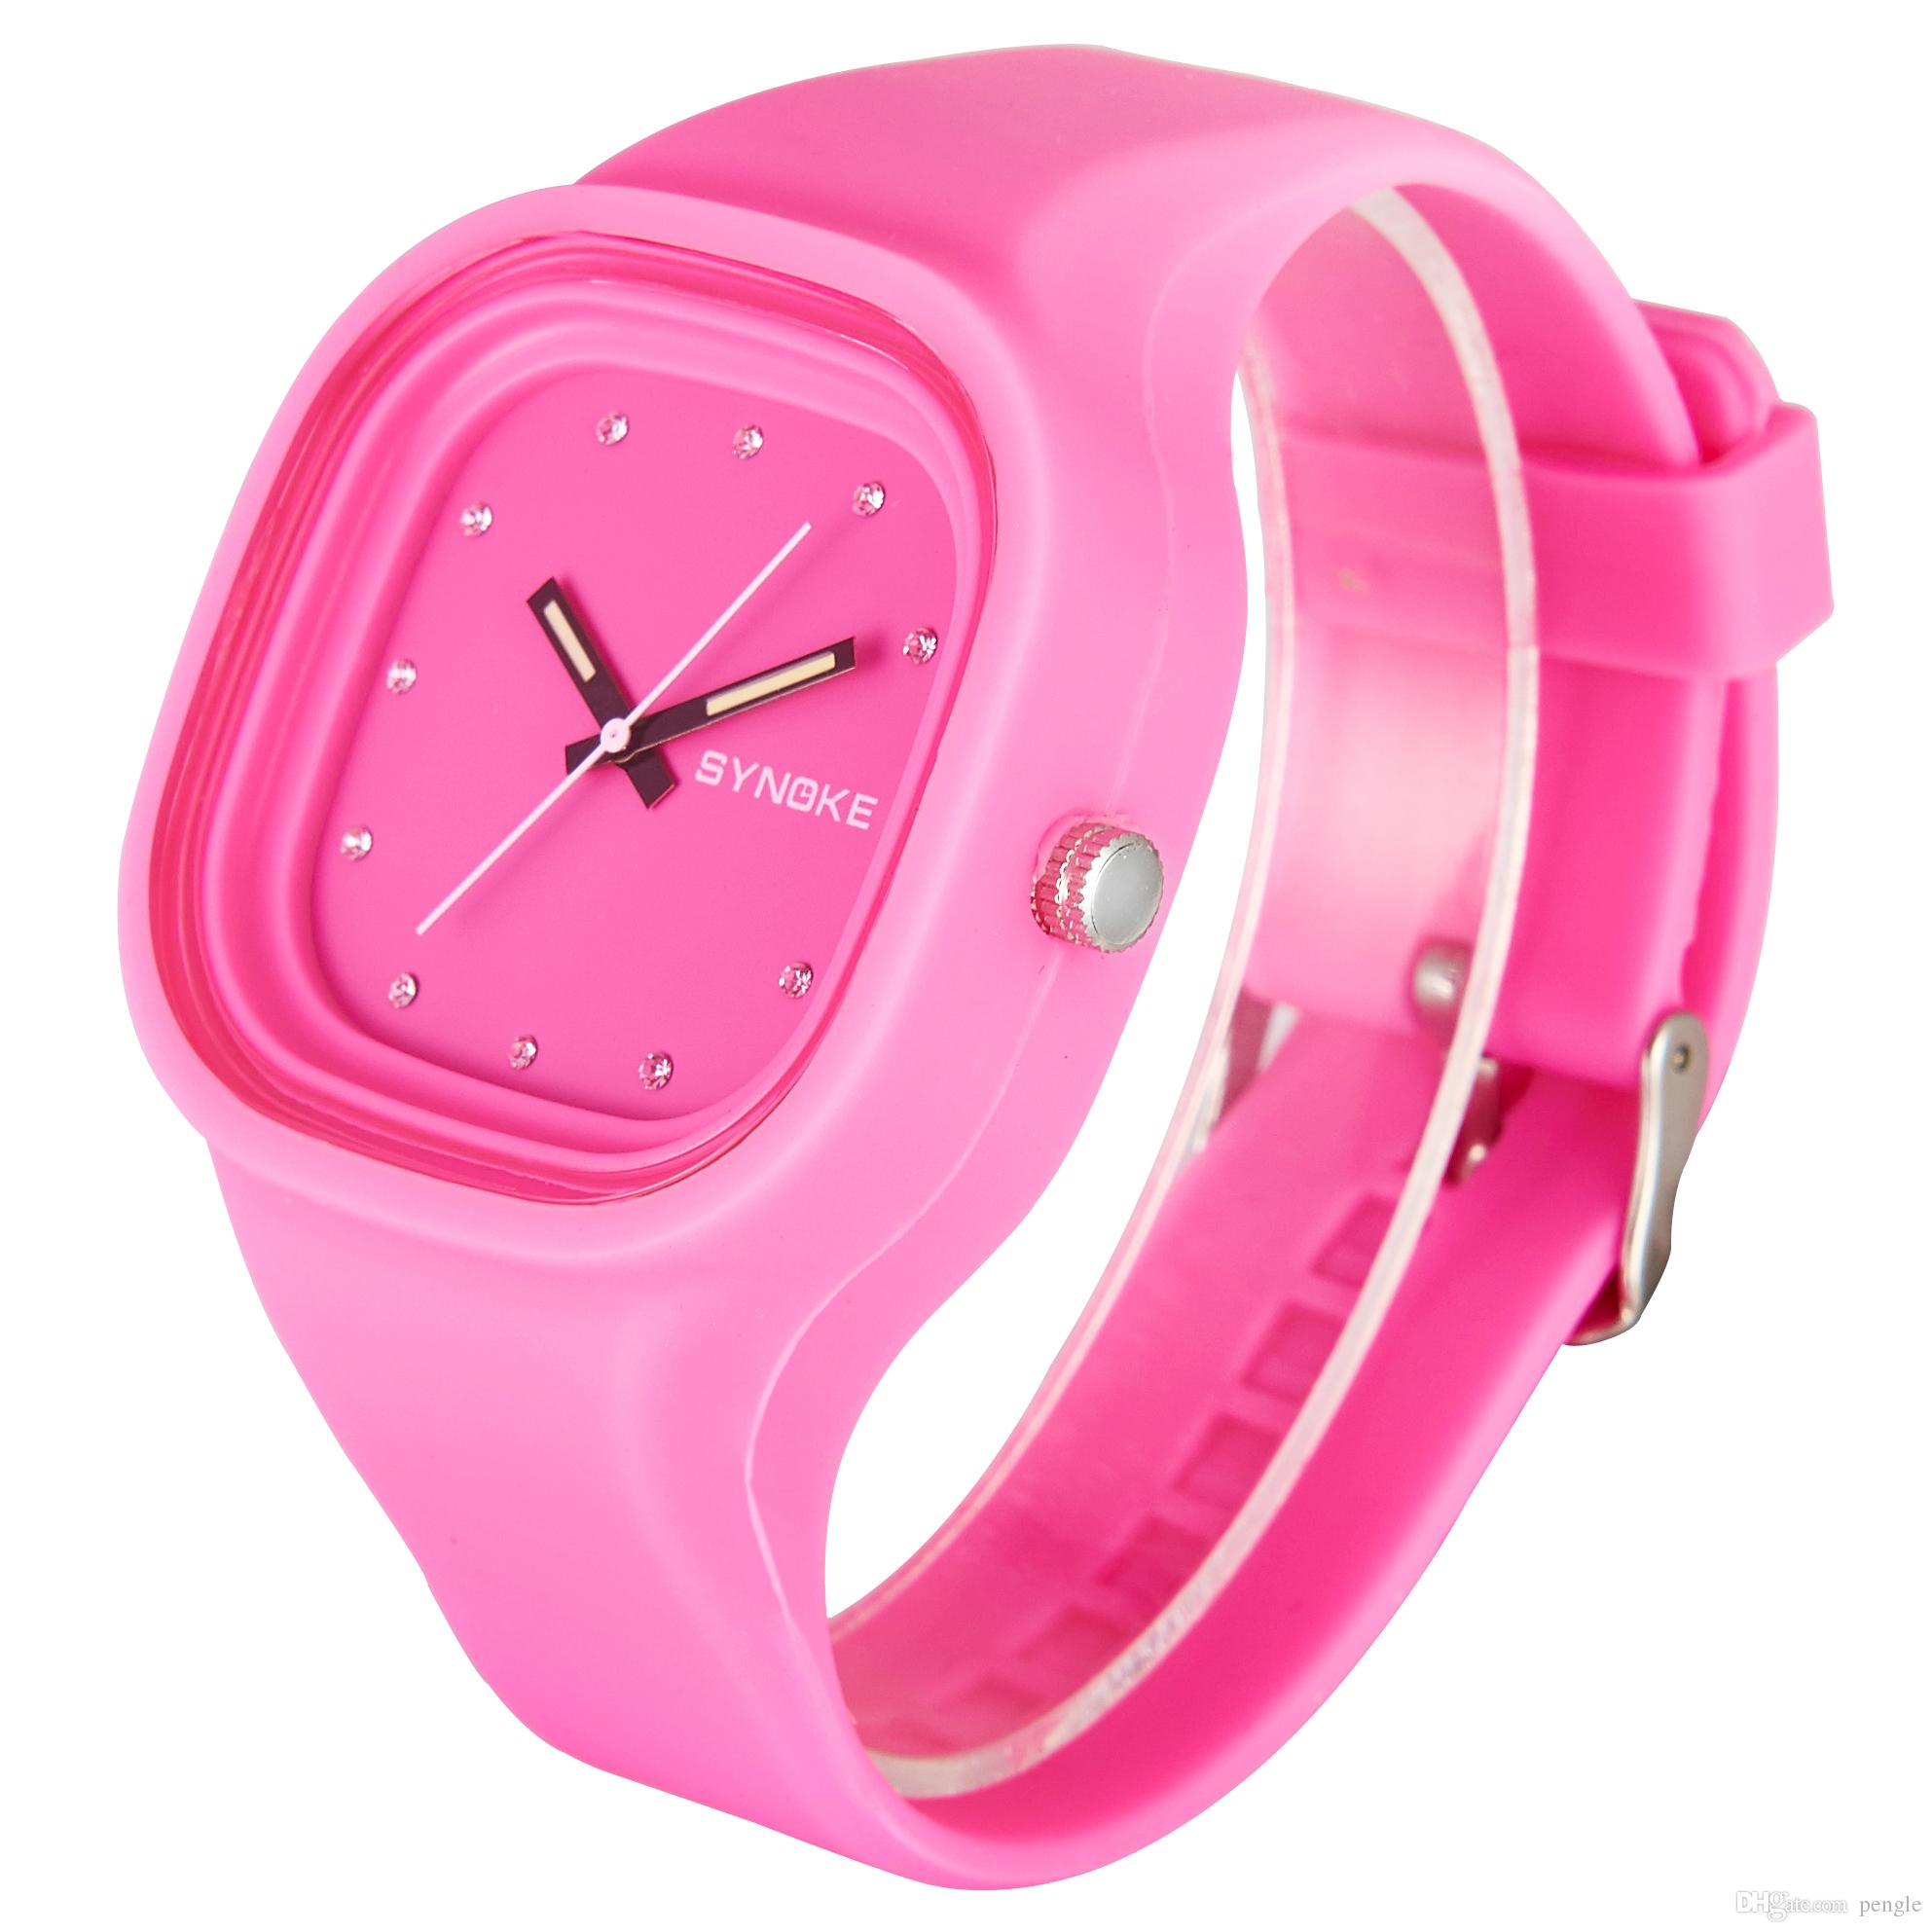 New Arrival Jelly Silicone Sports PU Colorful Square Dial Waterproof Watch For Women